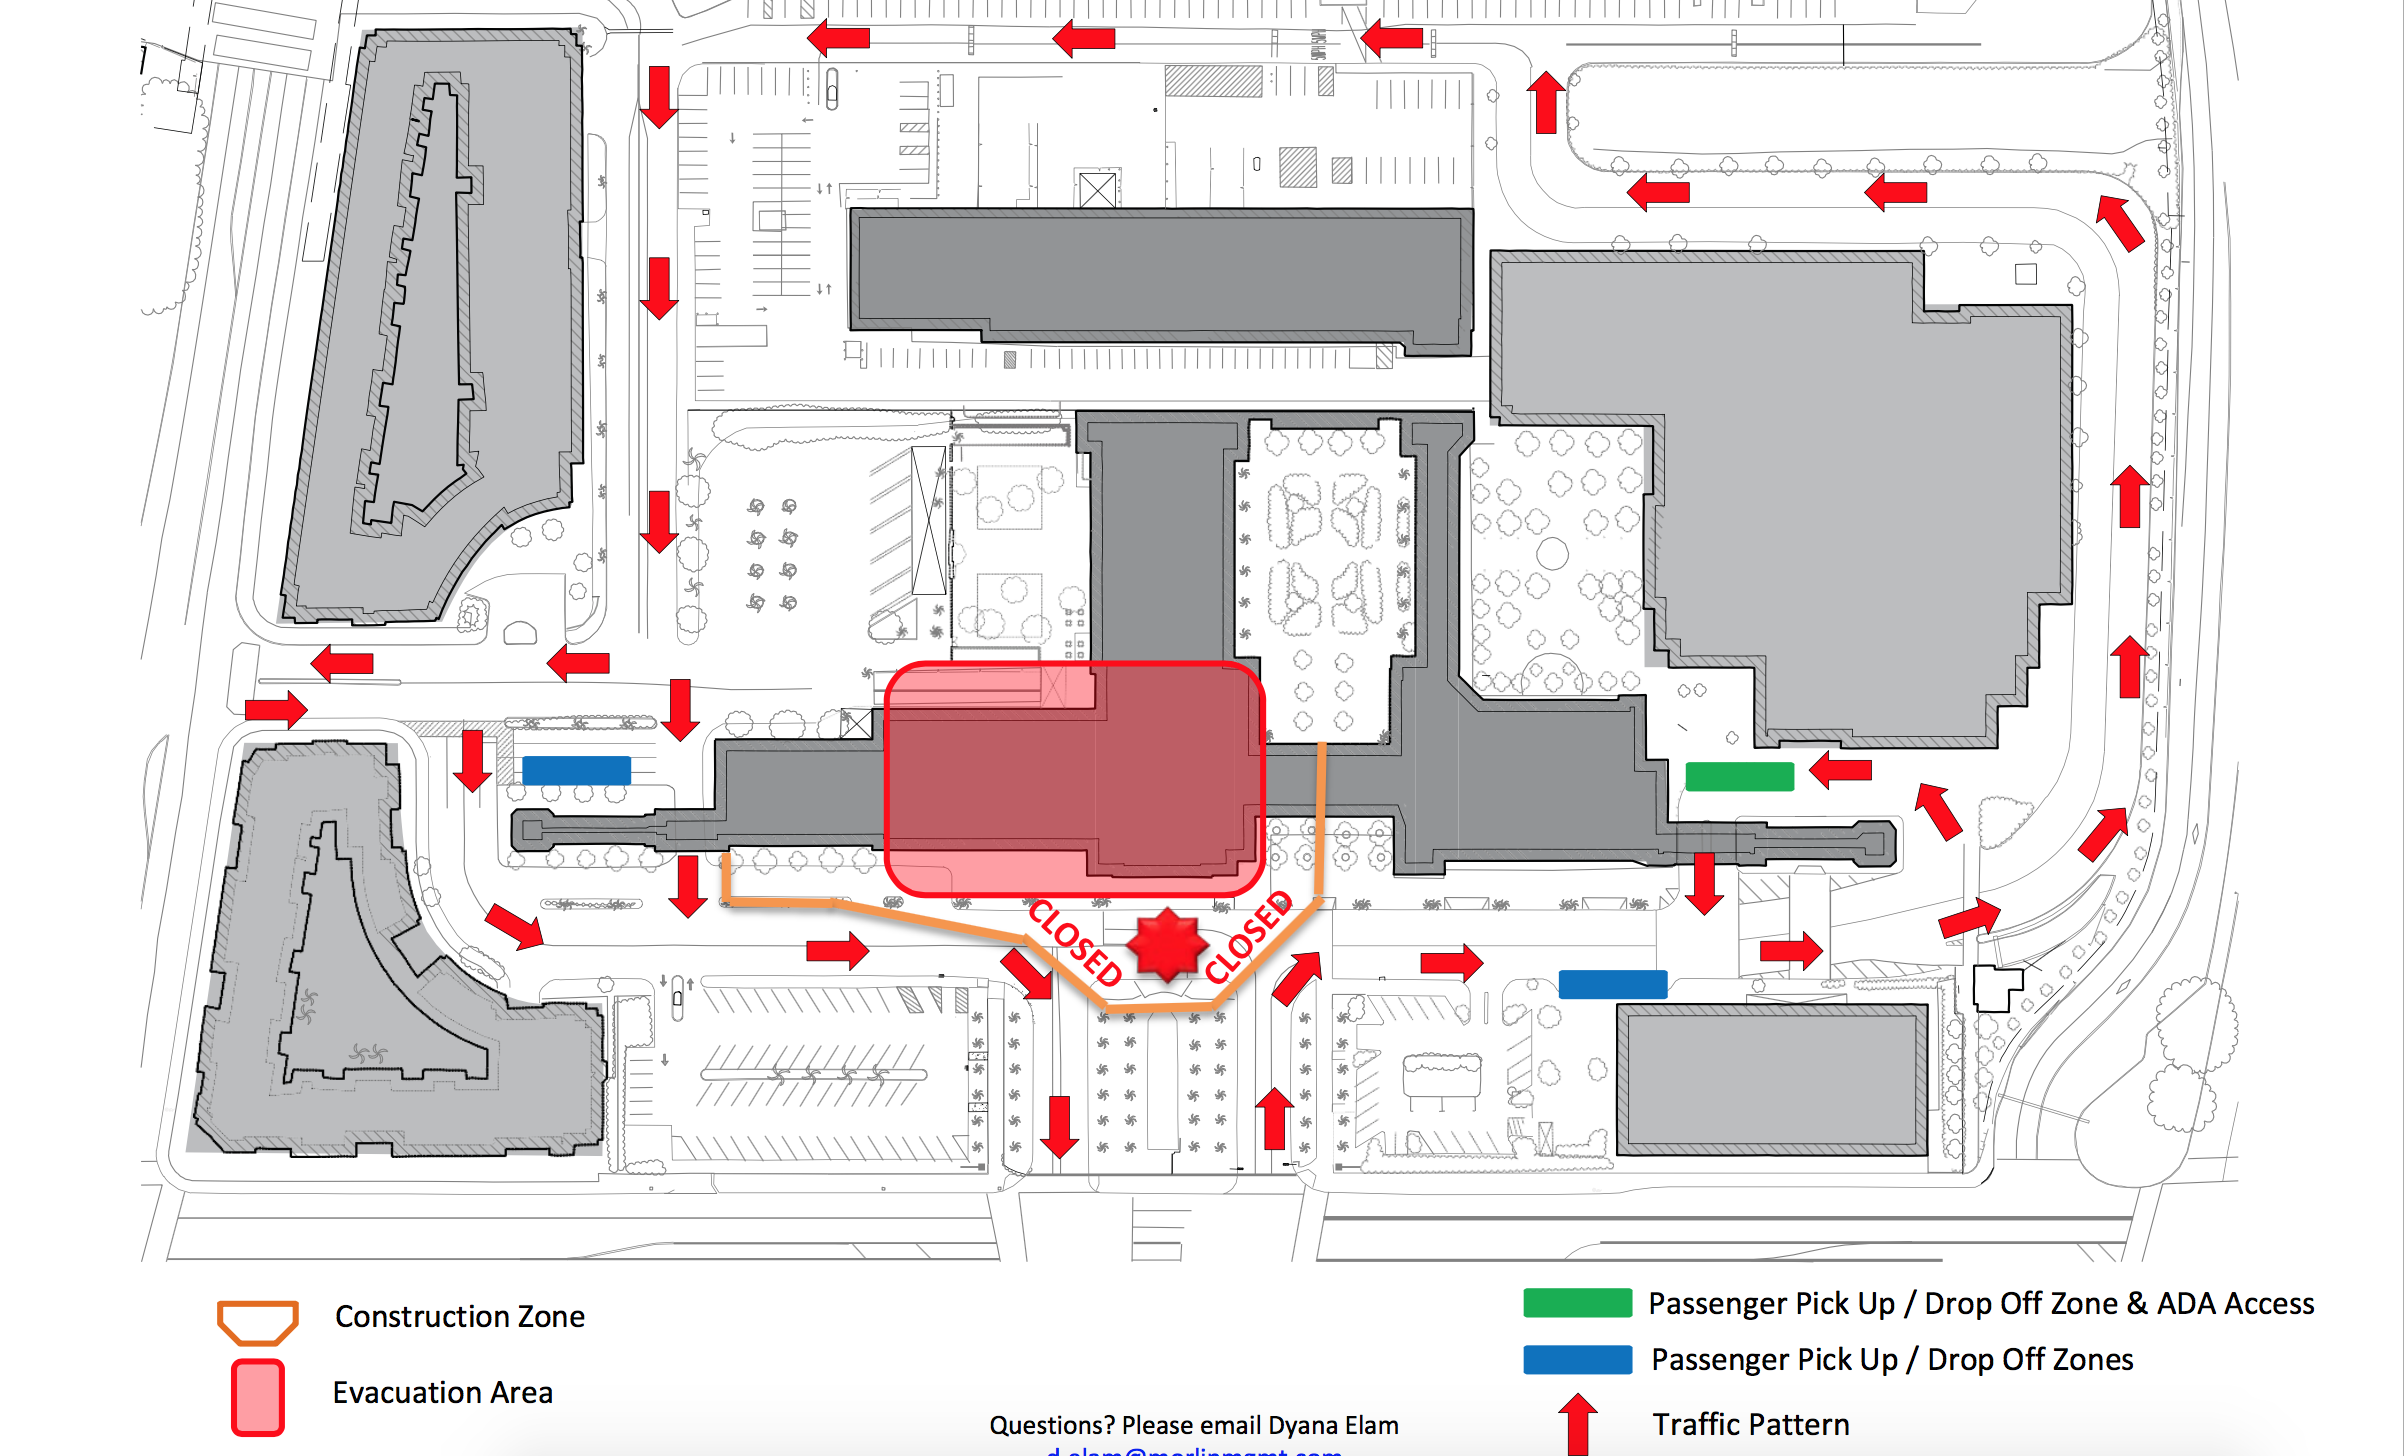 union station closure map entrance | The Source